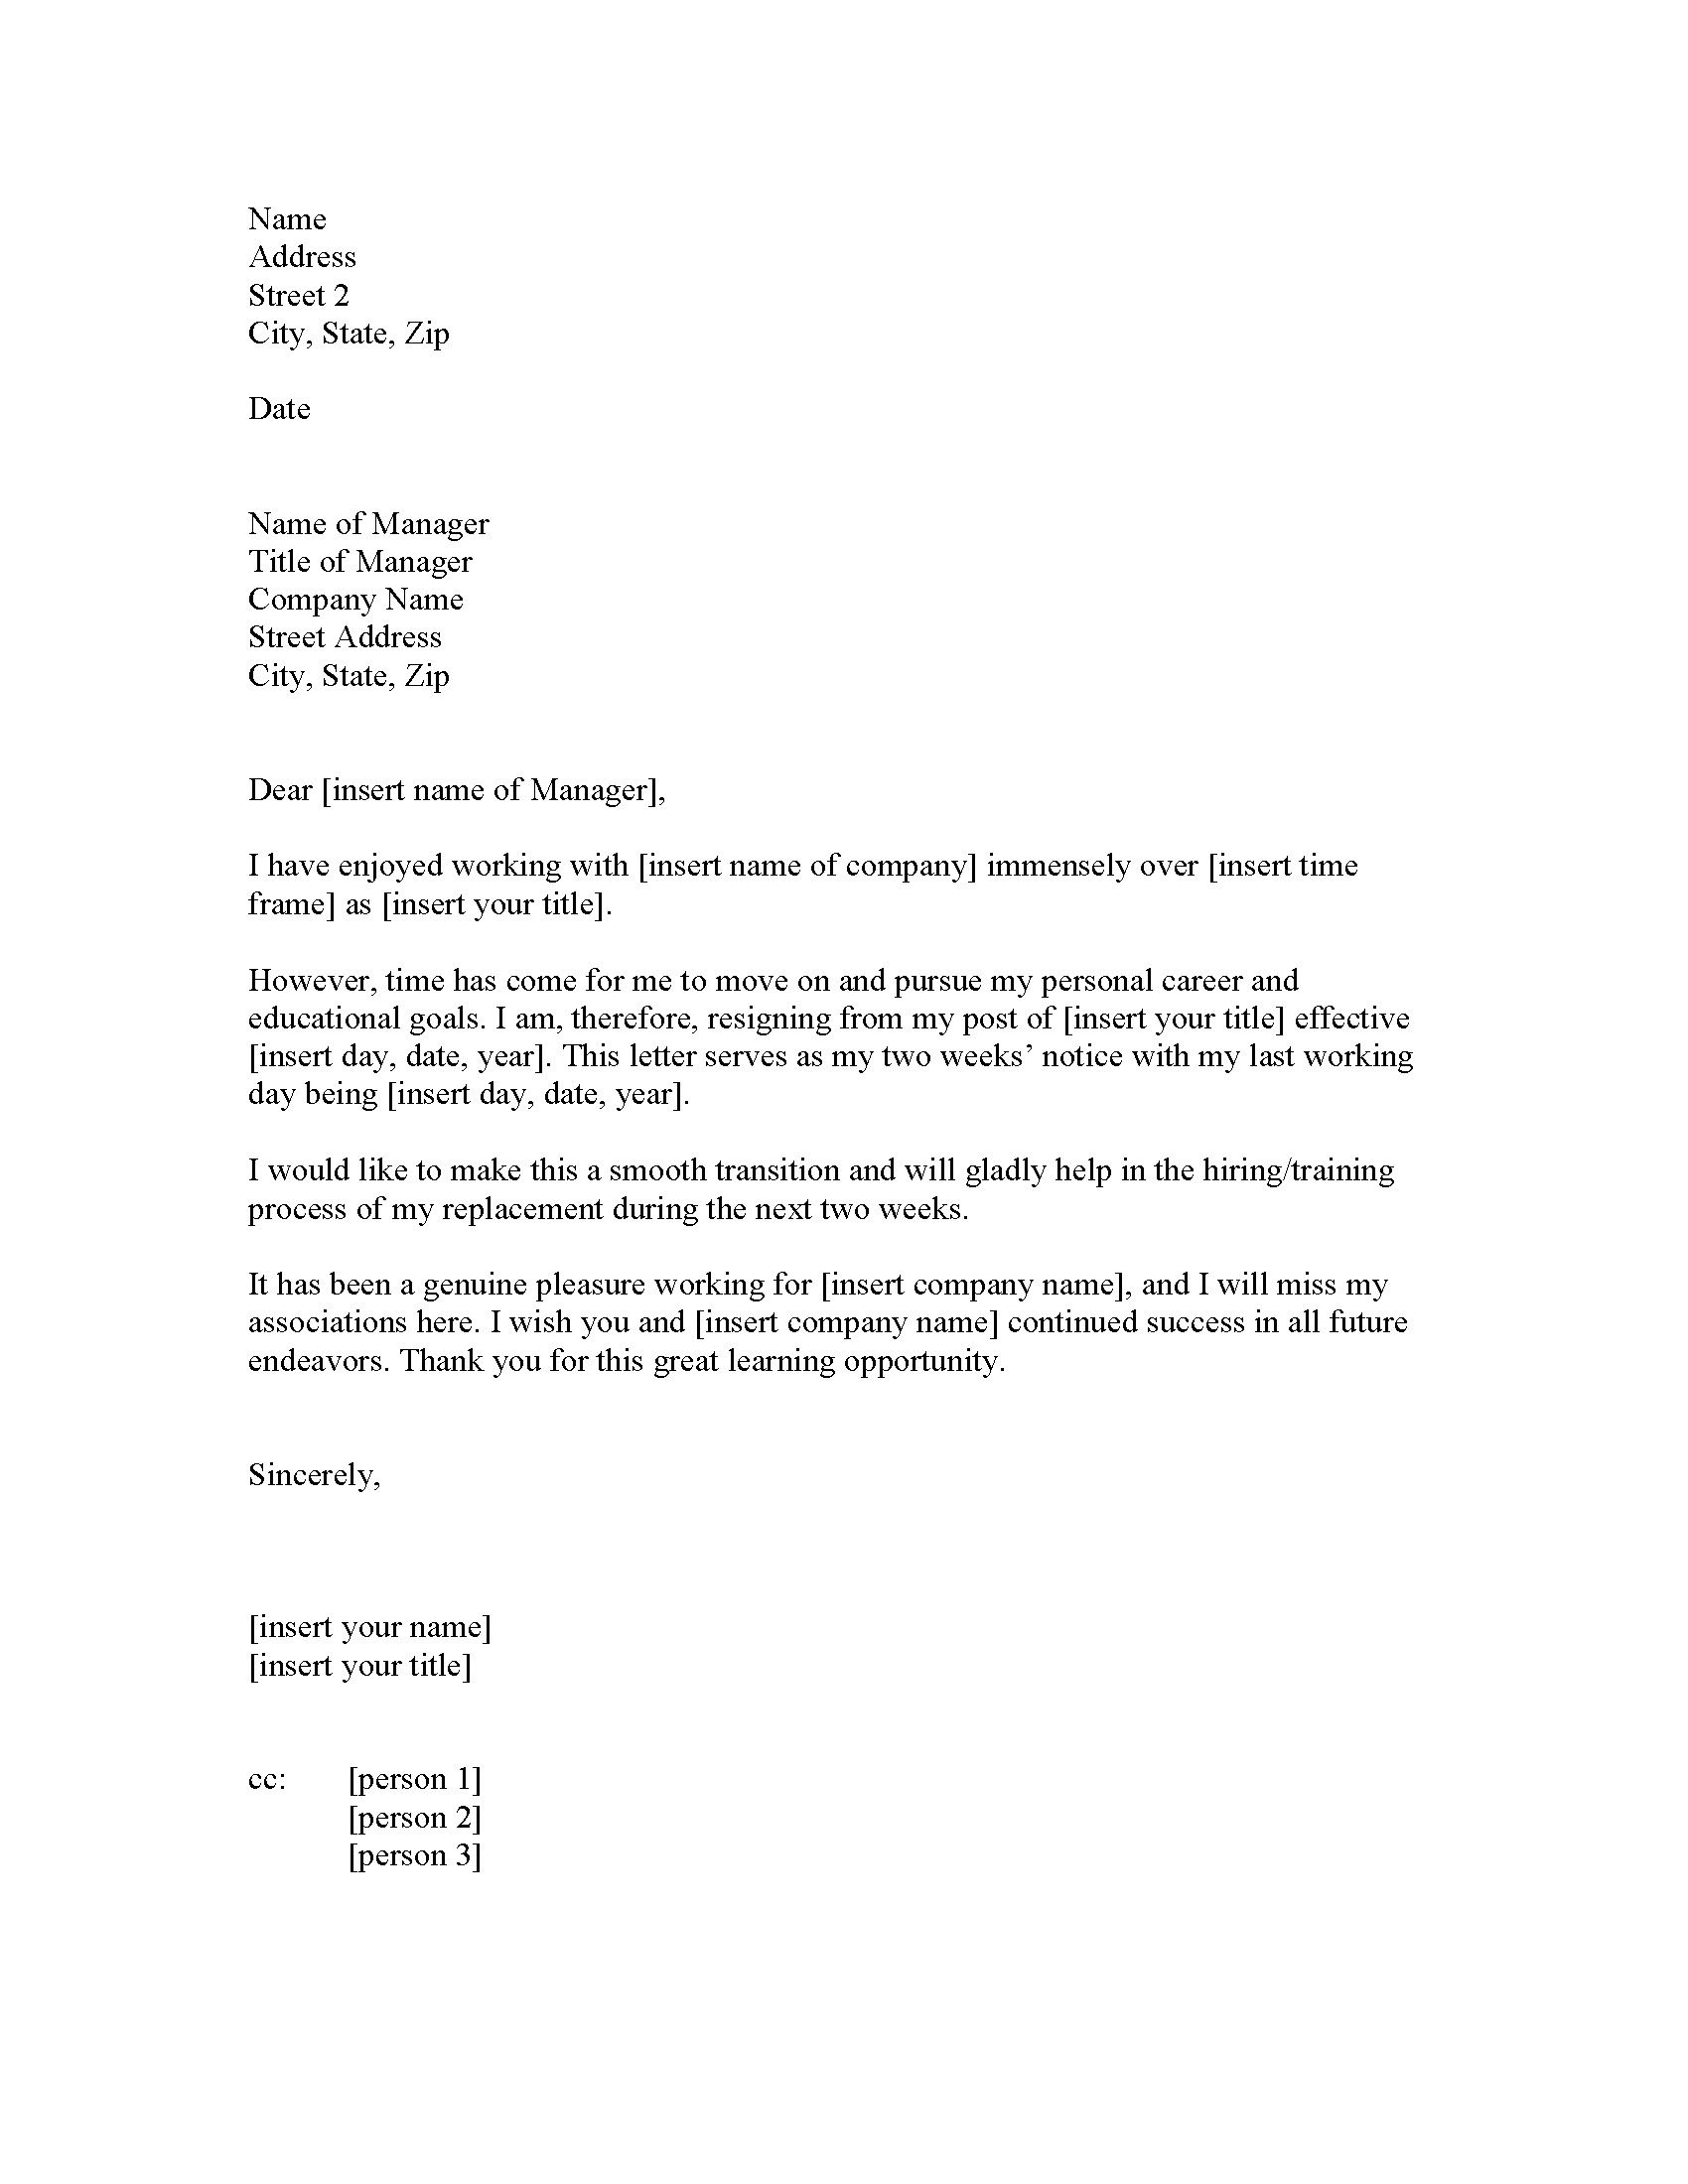 TwoWeek Resignation Letter Samples – Professional Resignation Letter Template